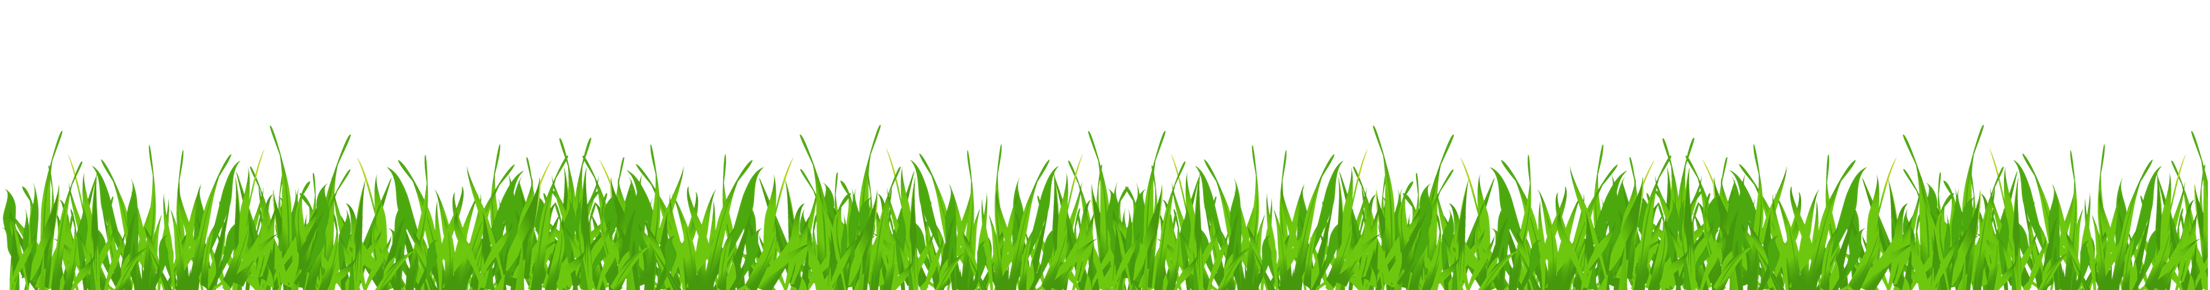 Grass PNG Clipart Places to Visit Pinterest